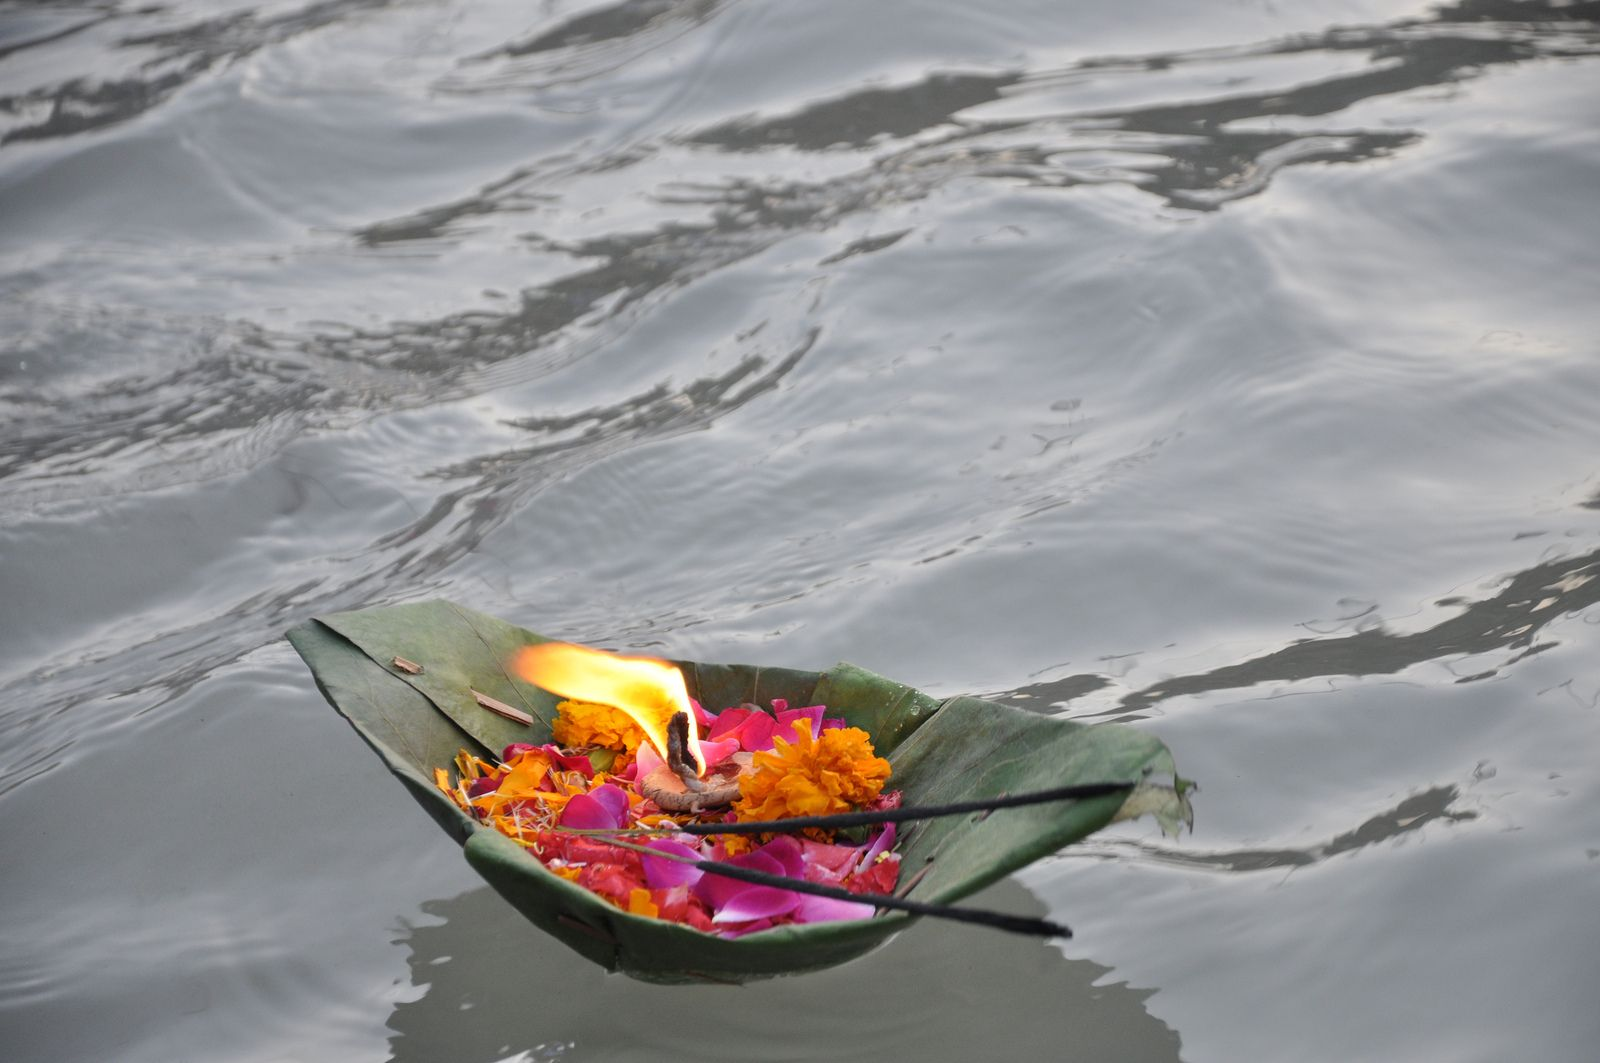 River Ganga. #Travel #India . Almost  5000 people gather at its banks in the evening to perform and witness the ganga arti.